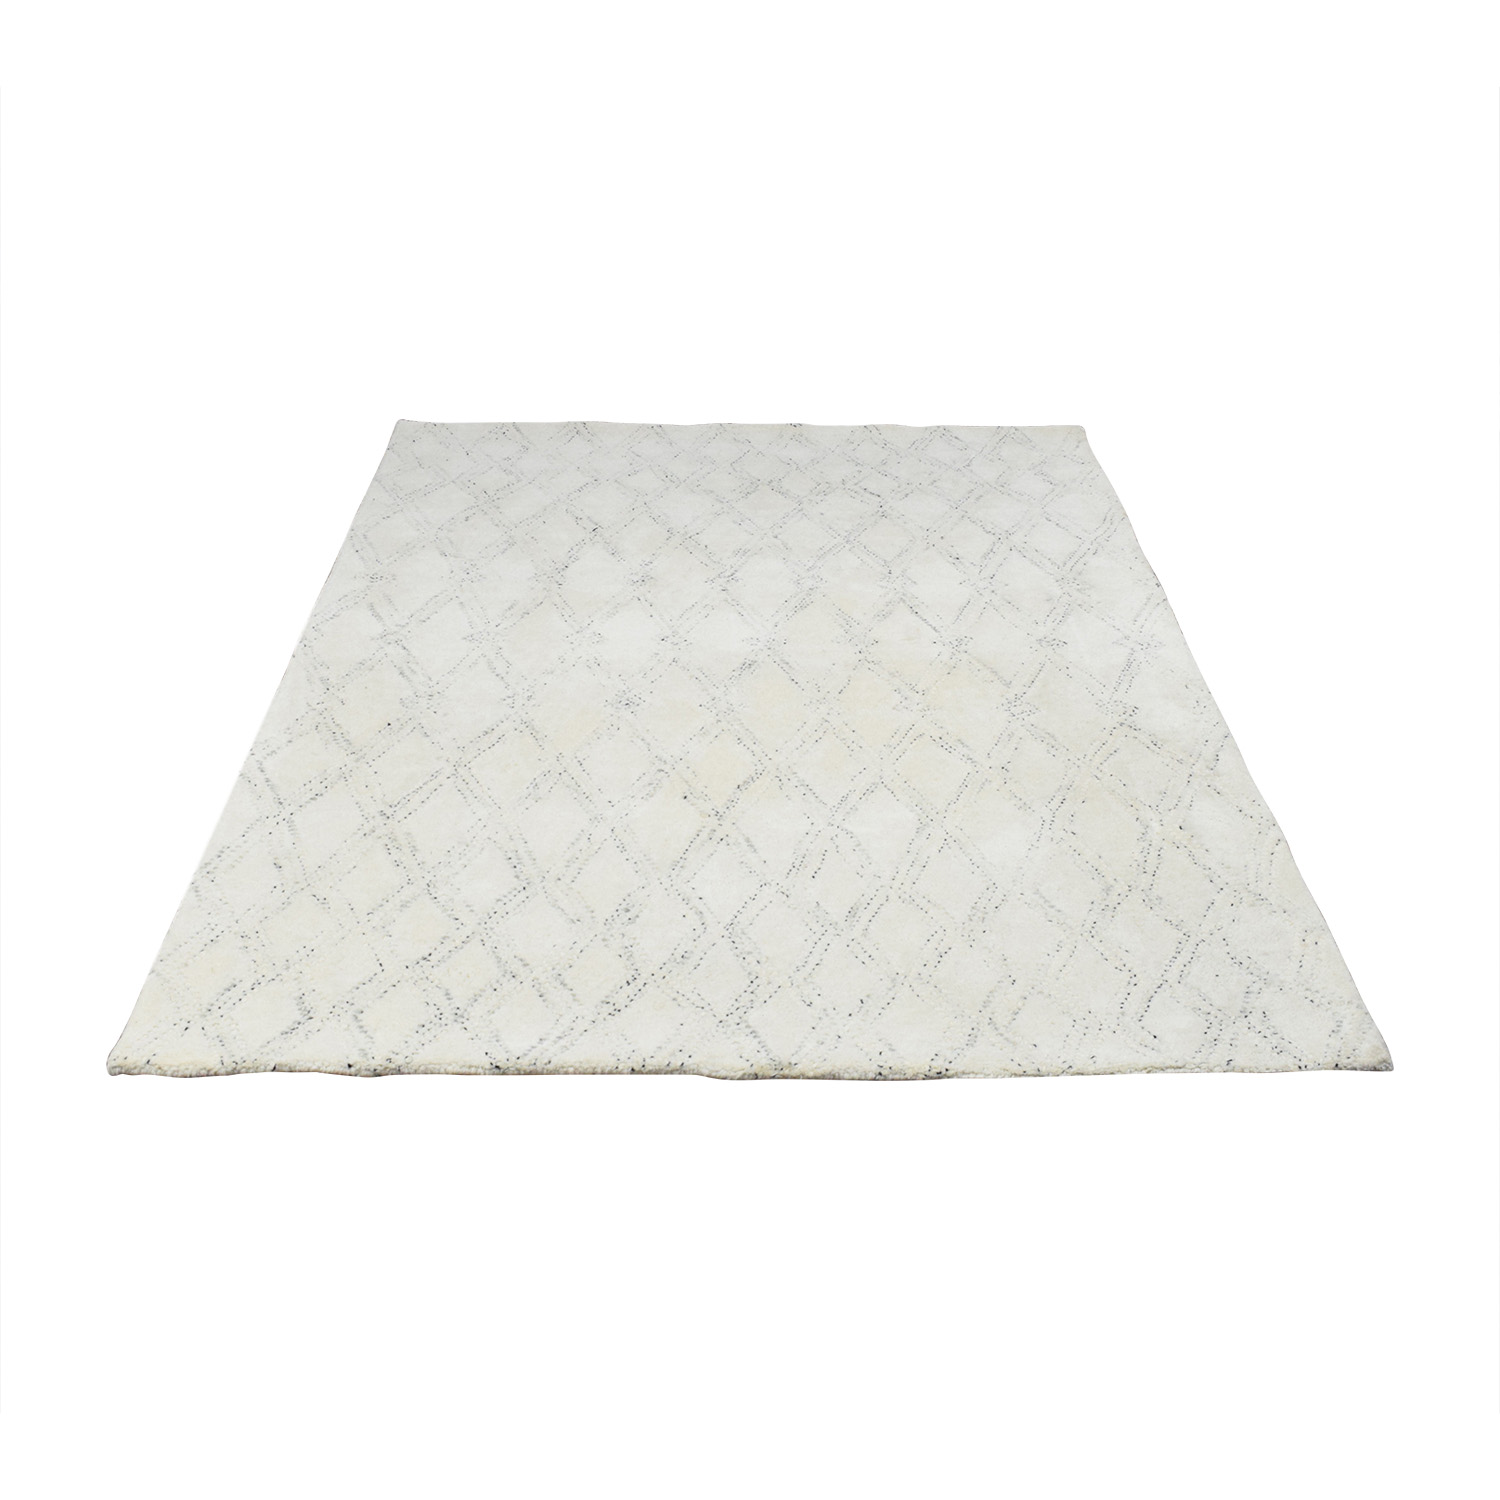 West Elm Hazy Lattice Rug / Rugs